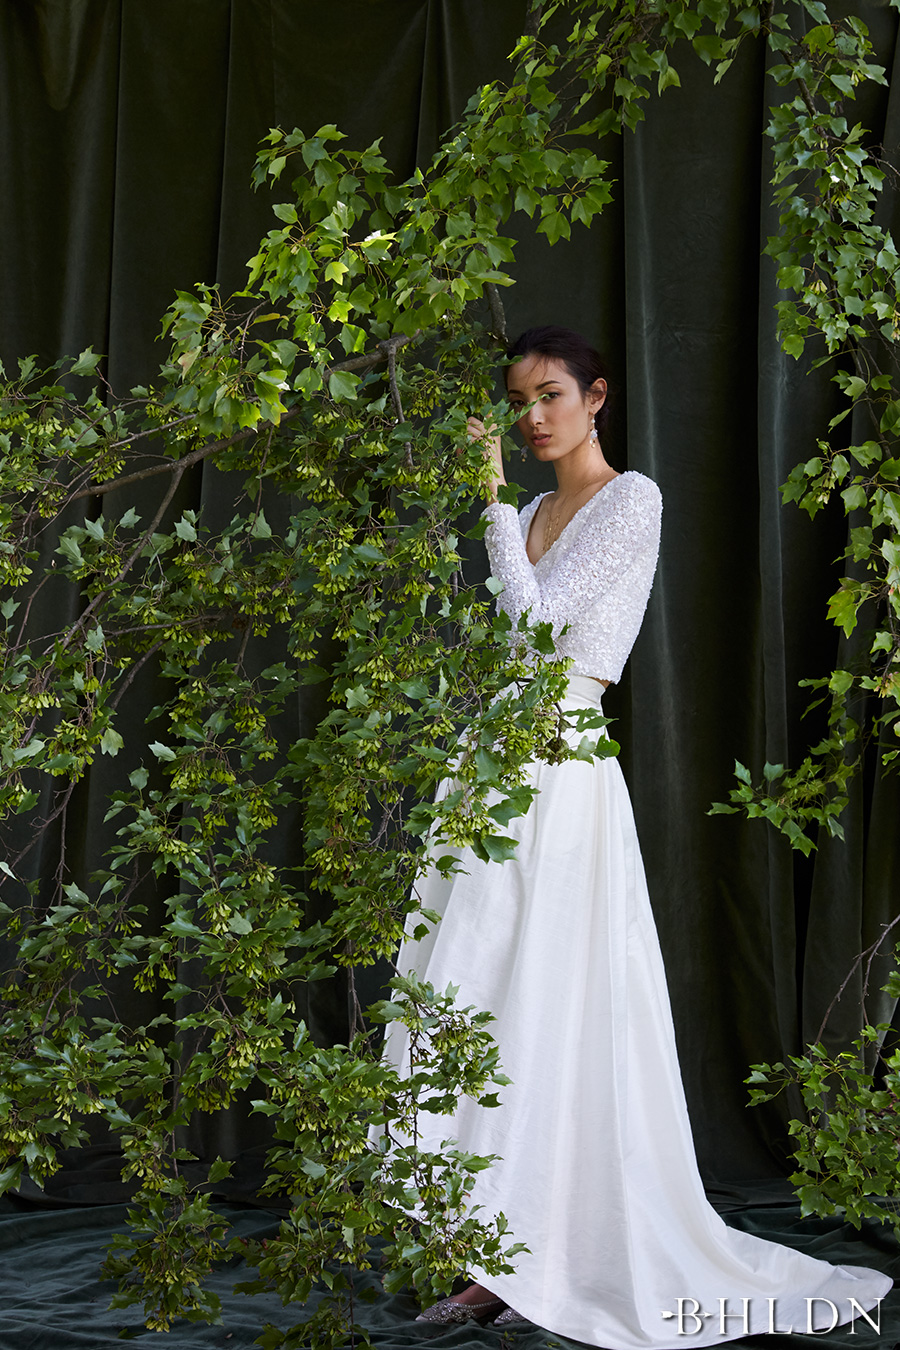 Behind the curtain bhldn s chic fall bridal collection for Long sleeve high low wedding dresses